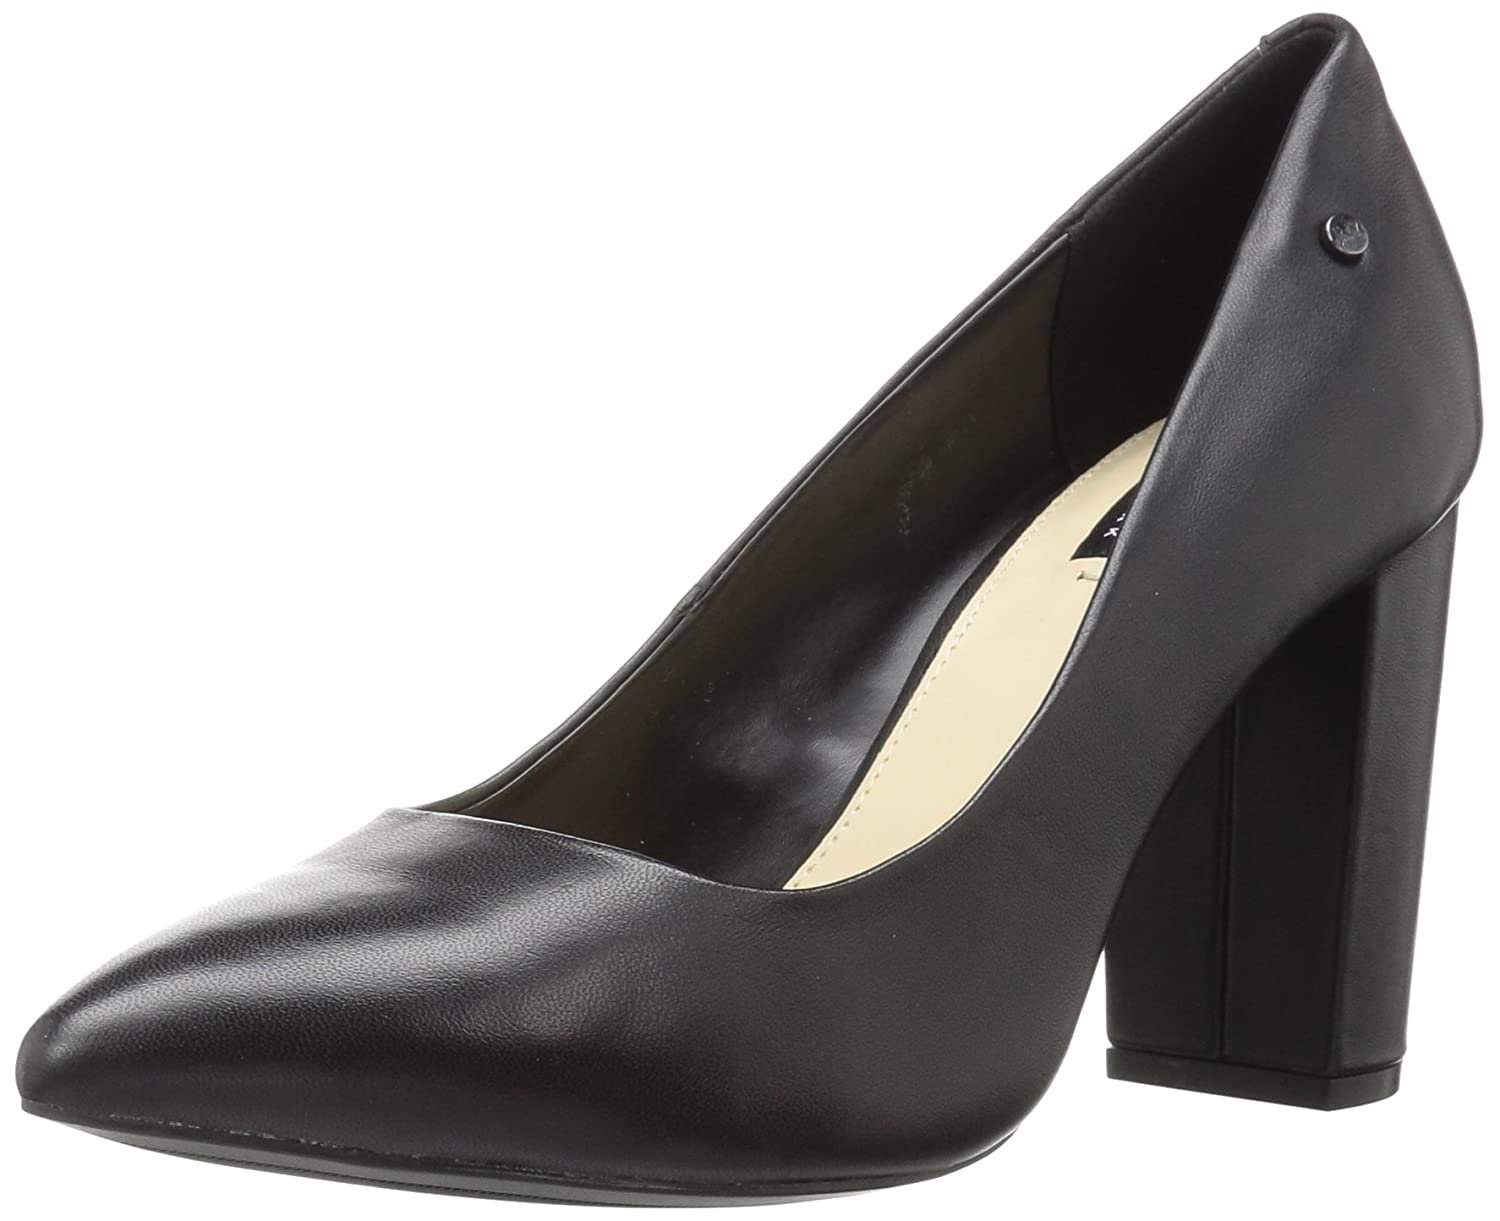 Jones New York Women's Cali Nappa Pump B072FL6CKP 7.5 B(M) US|Black